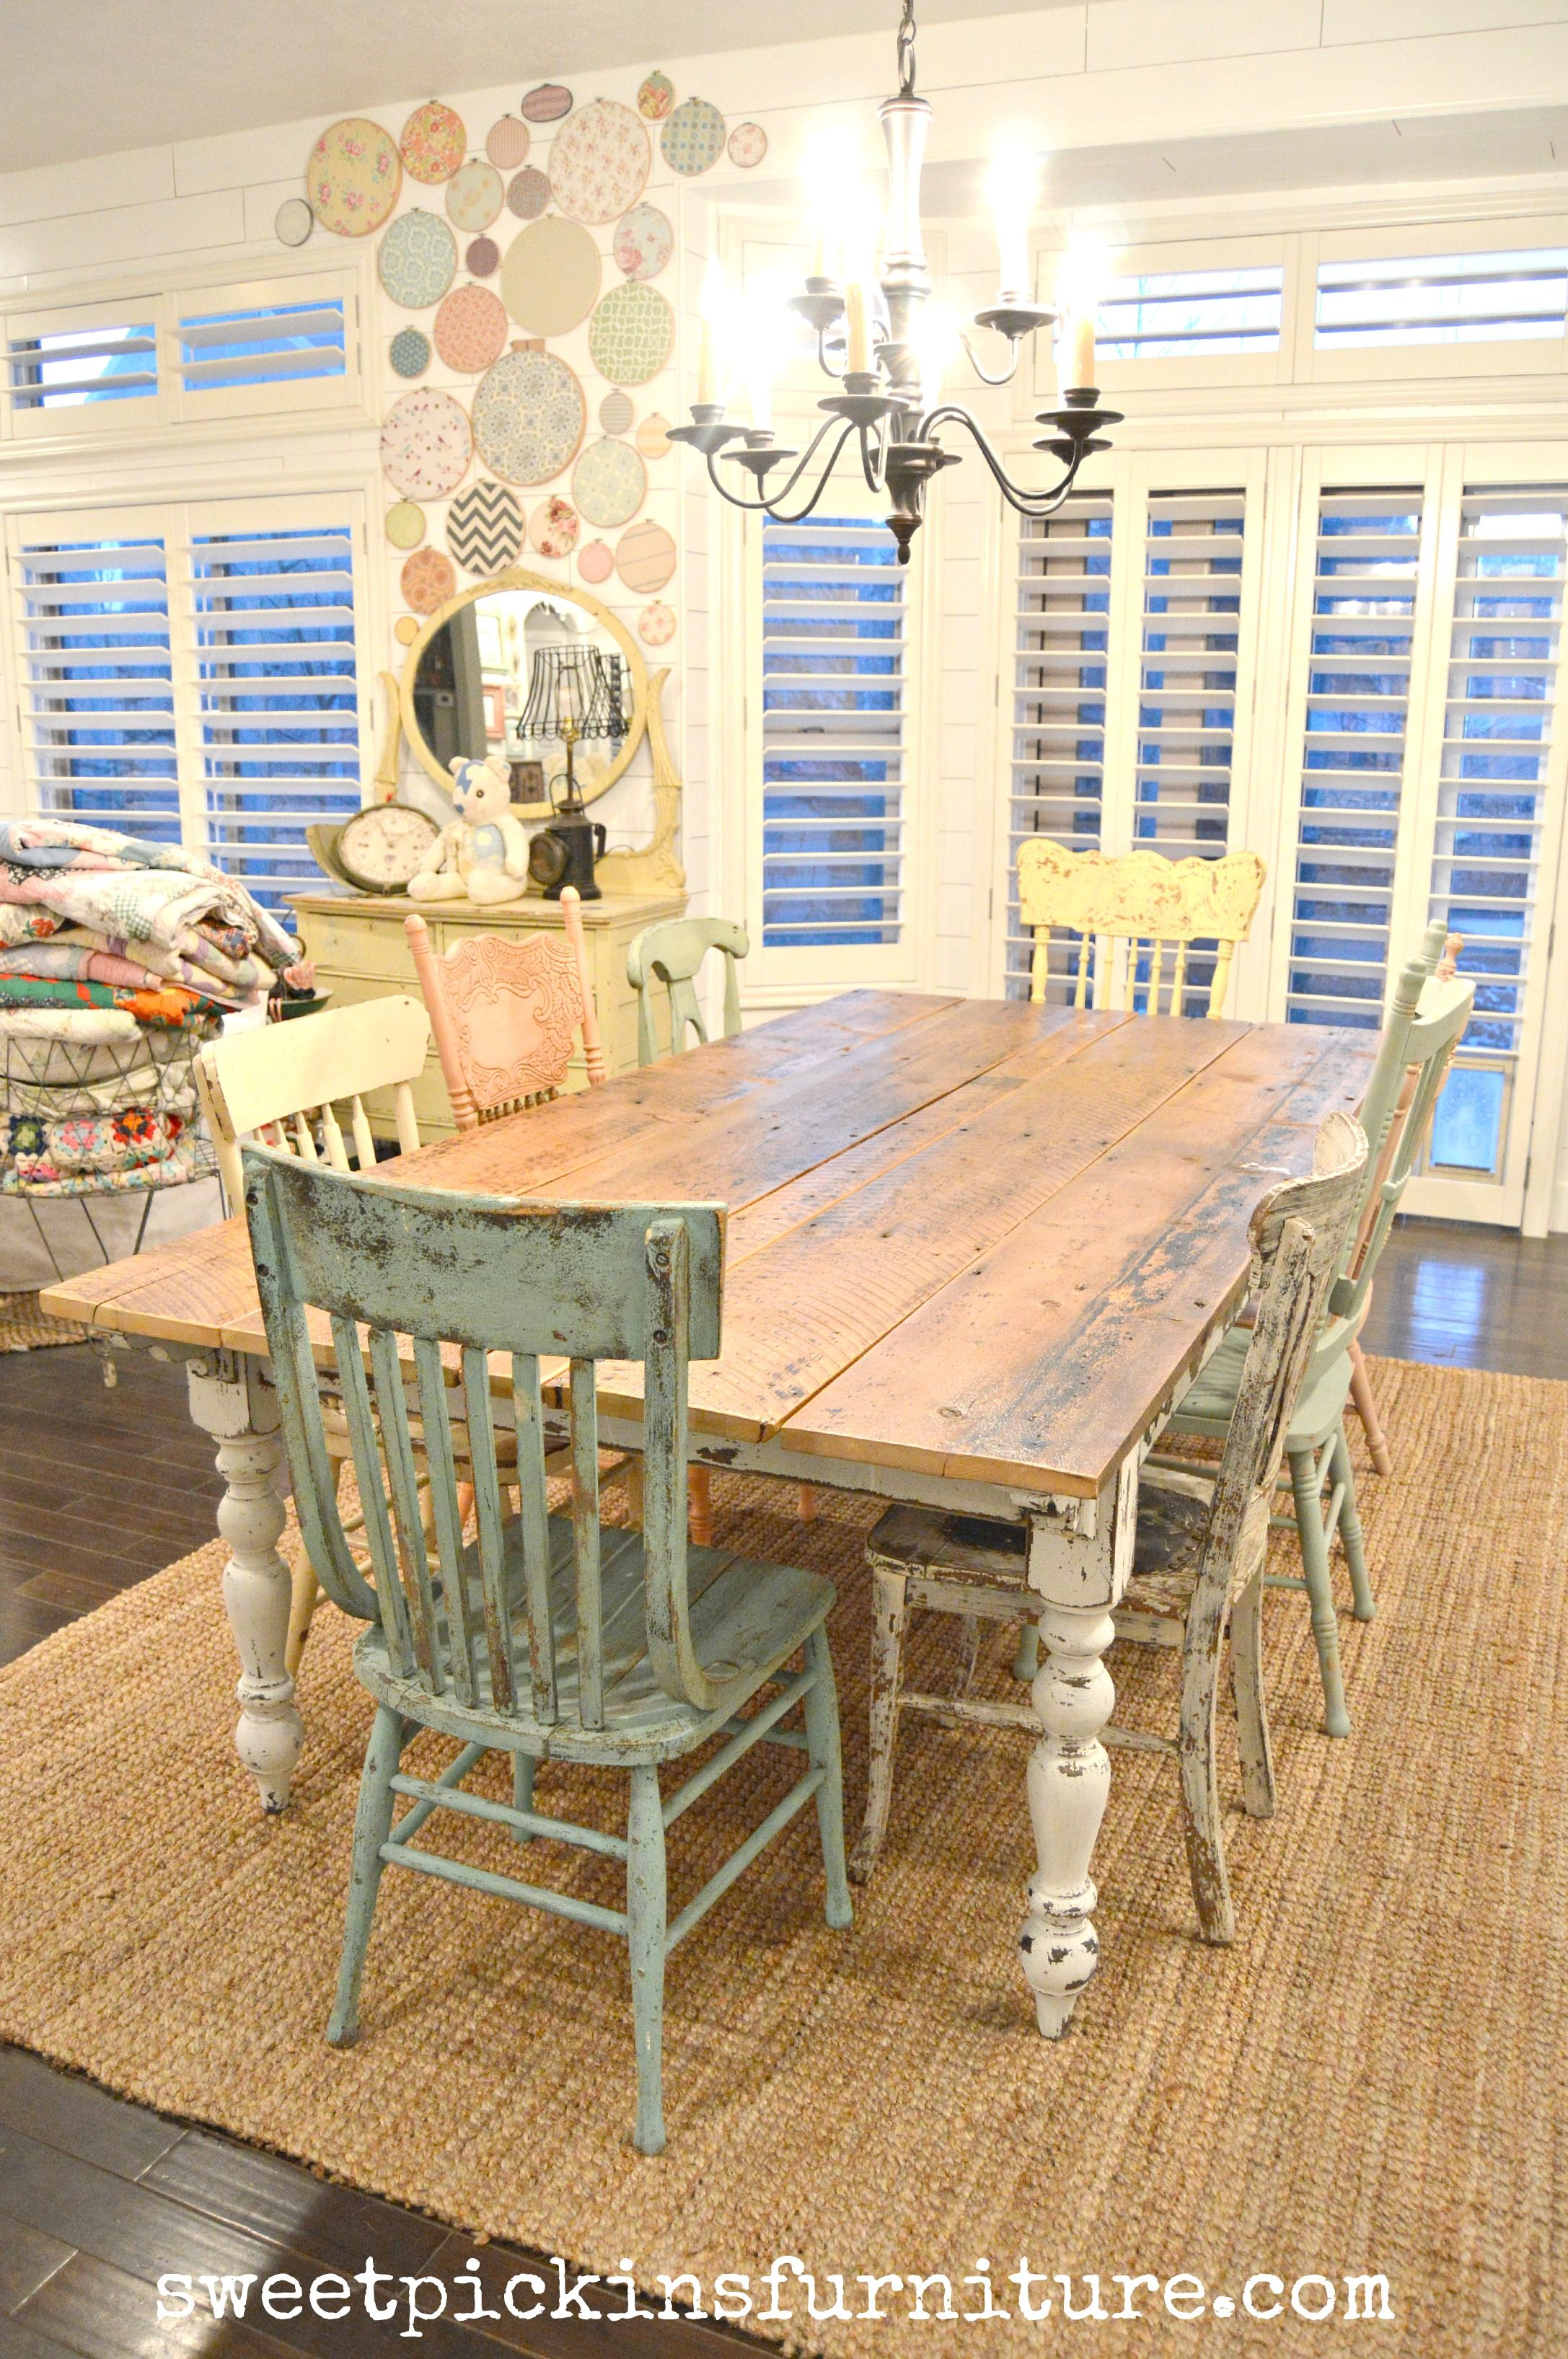 Sweet Pickins farm table My new